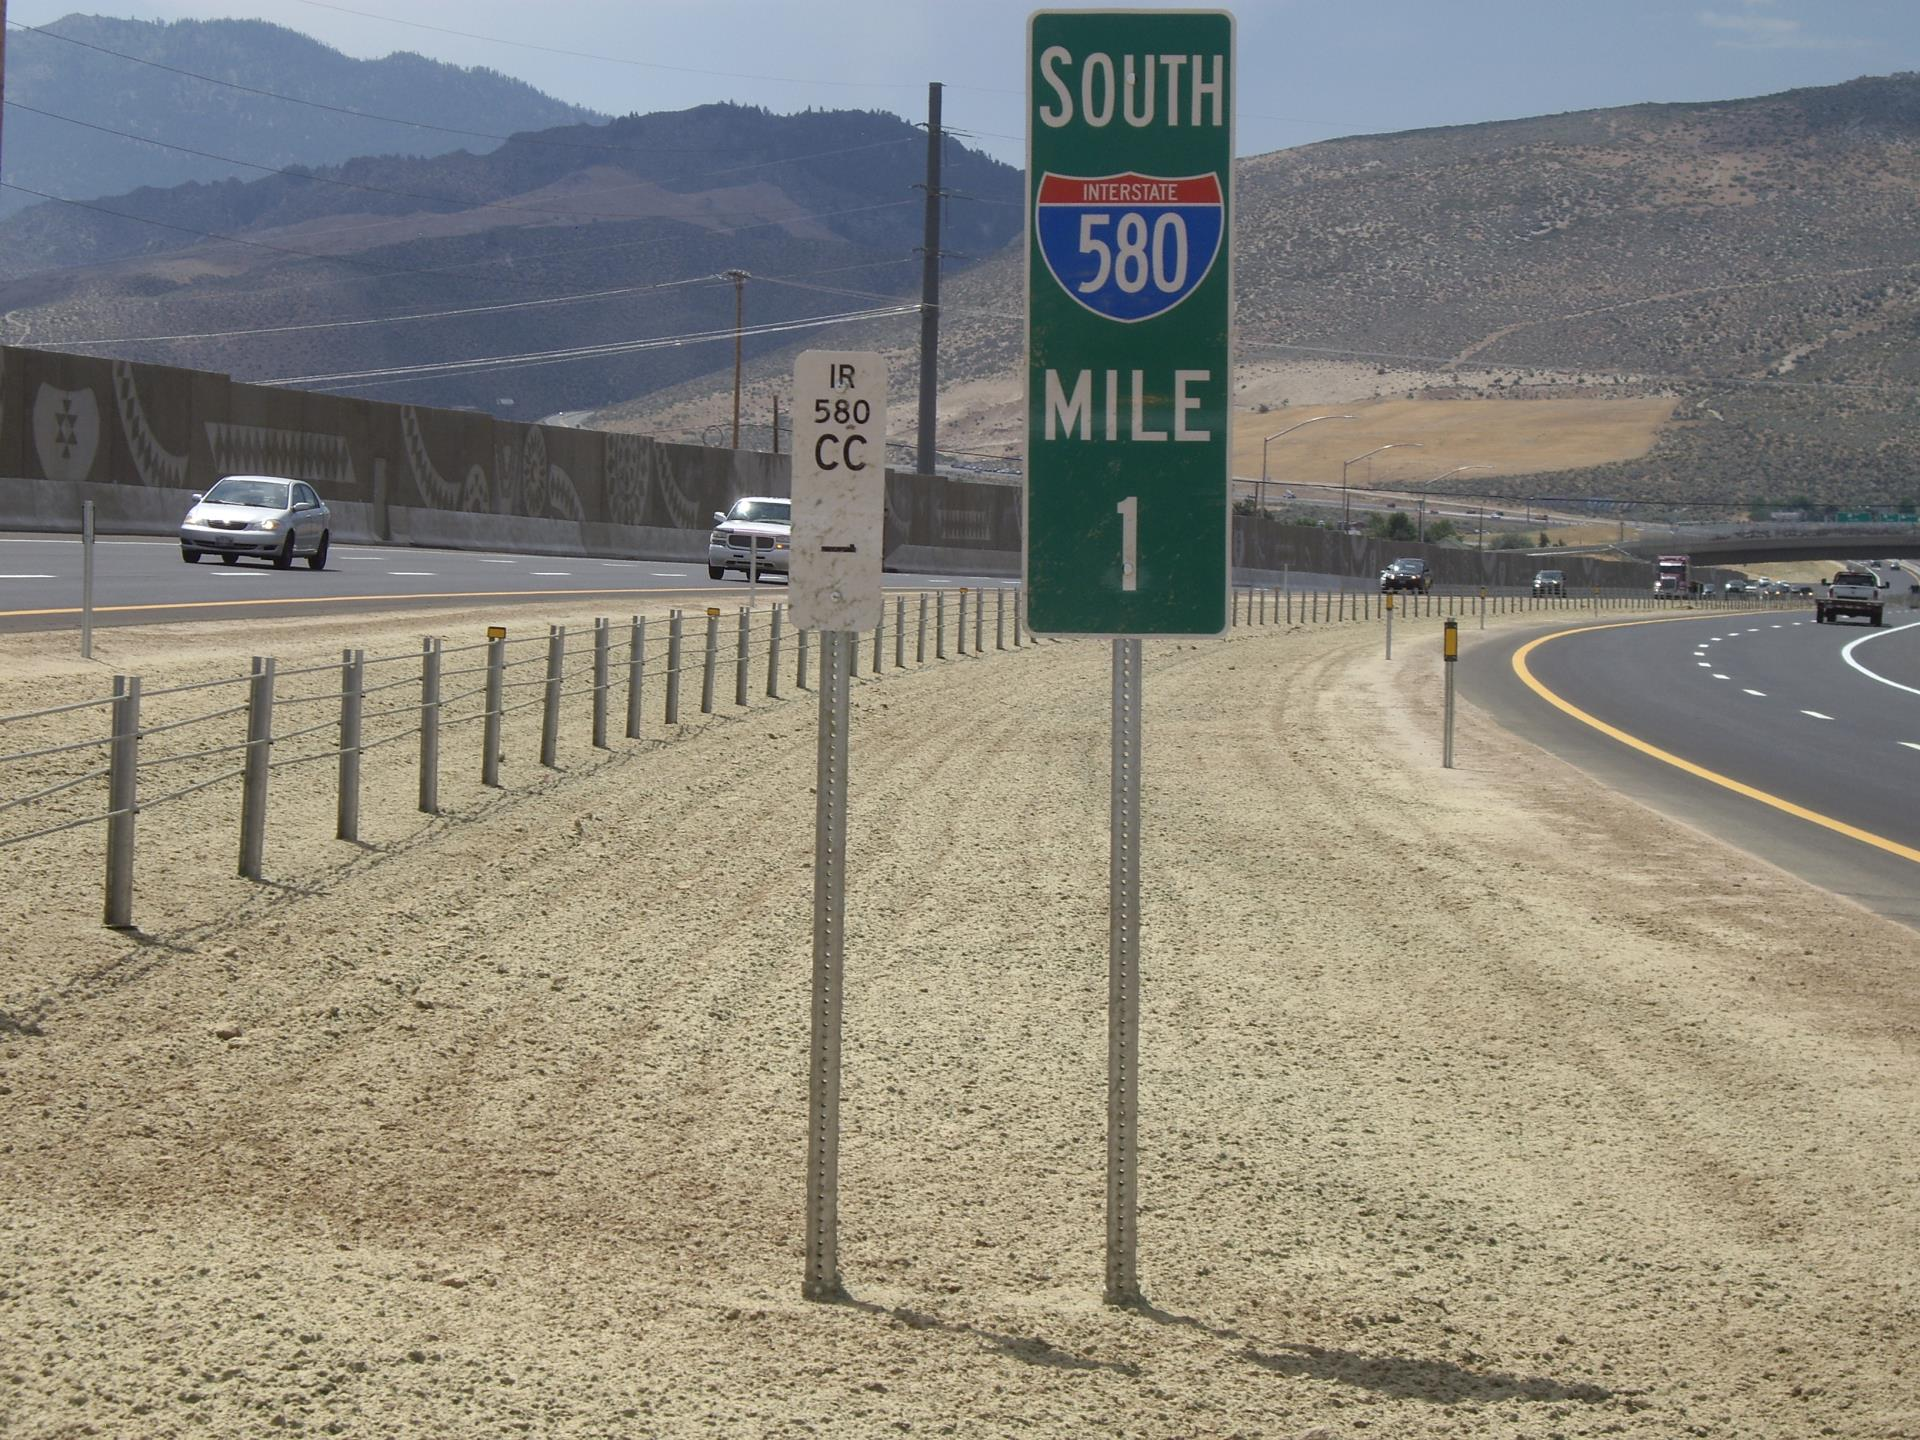 Mile Marker 1 on Interstate 580 in Carson City